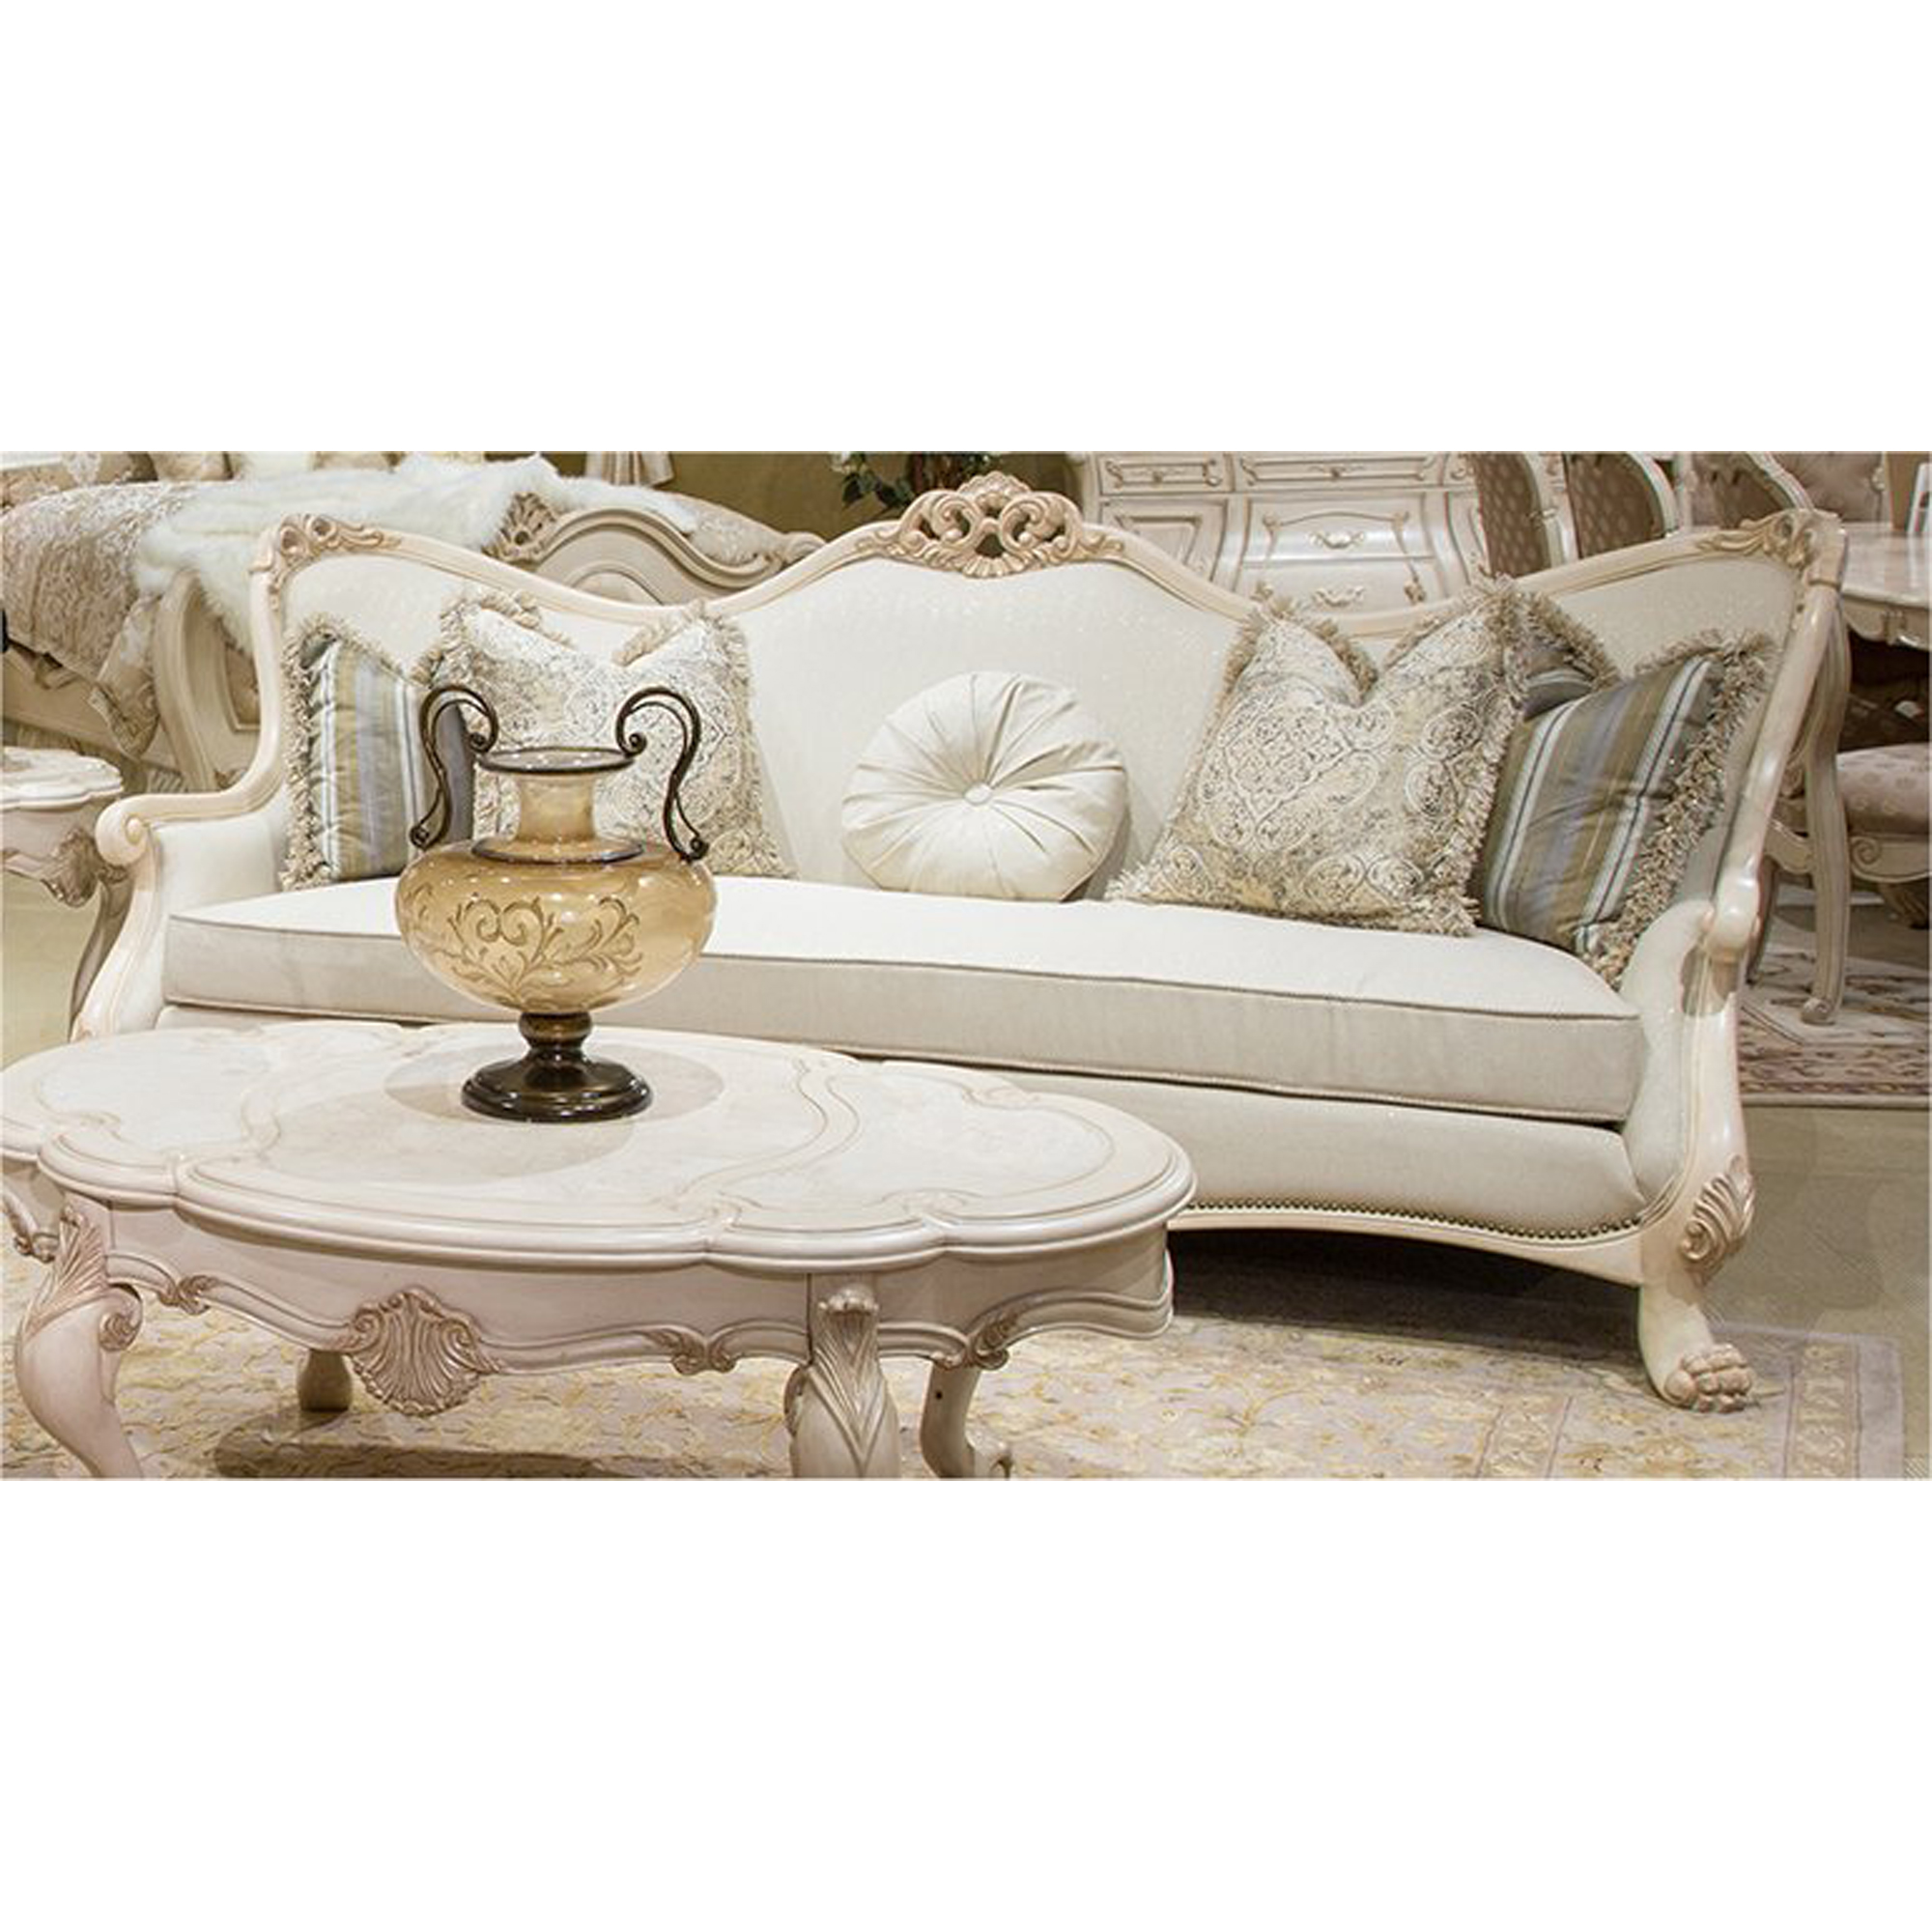 Chateau de lago wood trim sofa in cream by aico home for Lago furniture